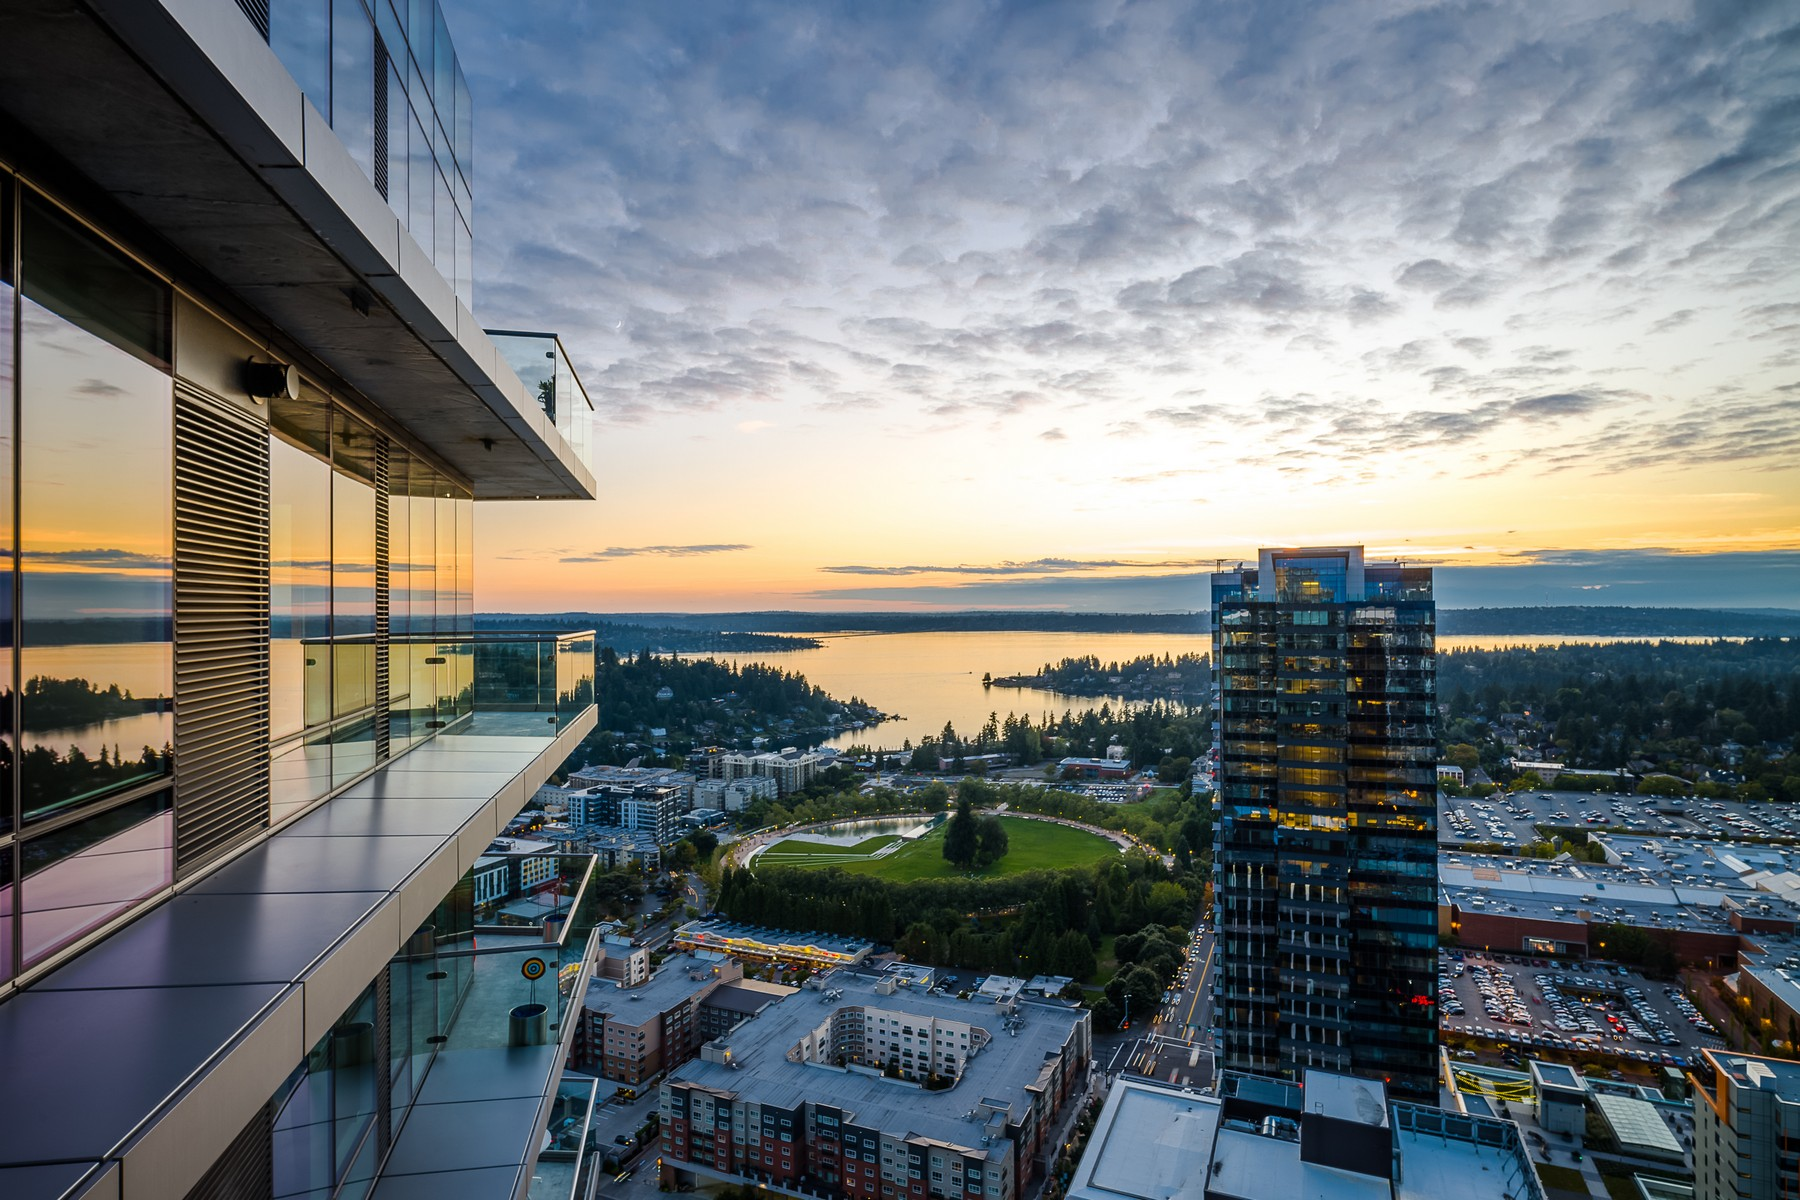 Bellevue Tower Penthouse 10700 NE 4th St #4102 Bellevue, Washington 98004 United States